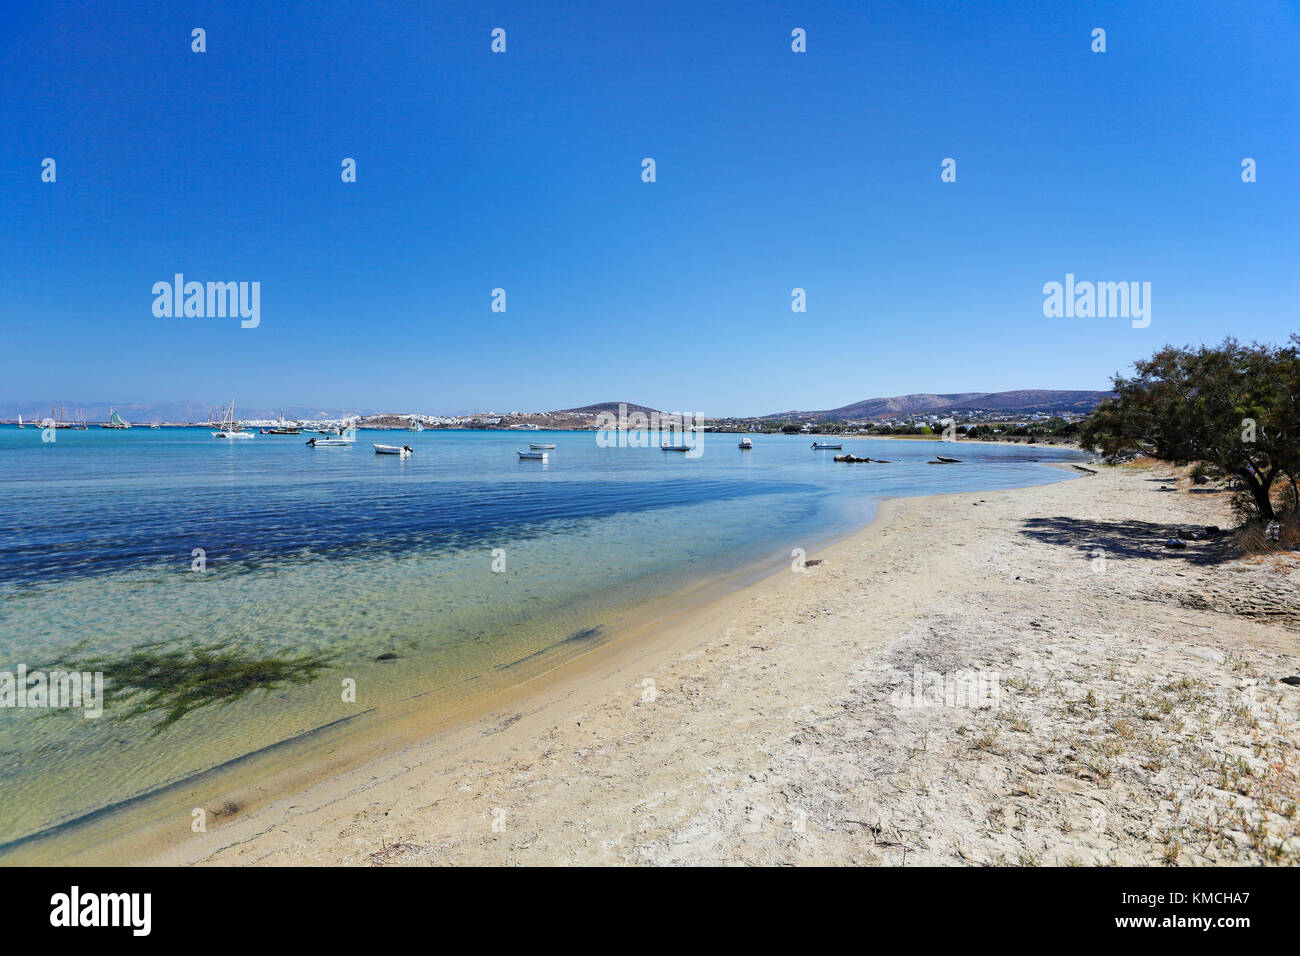 Kolymbithres beach in Paros island, Greece - Stock Image